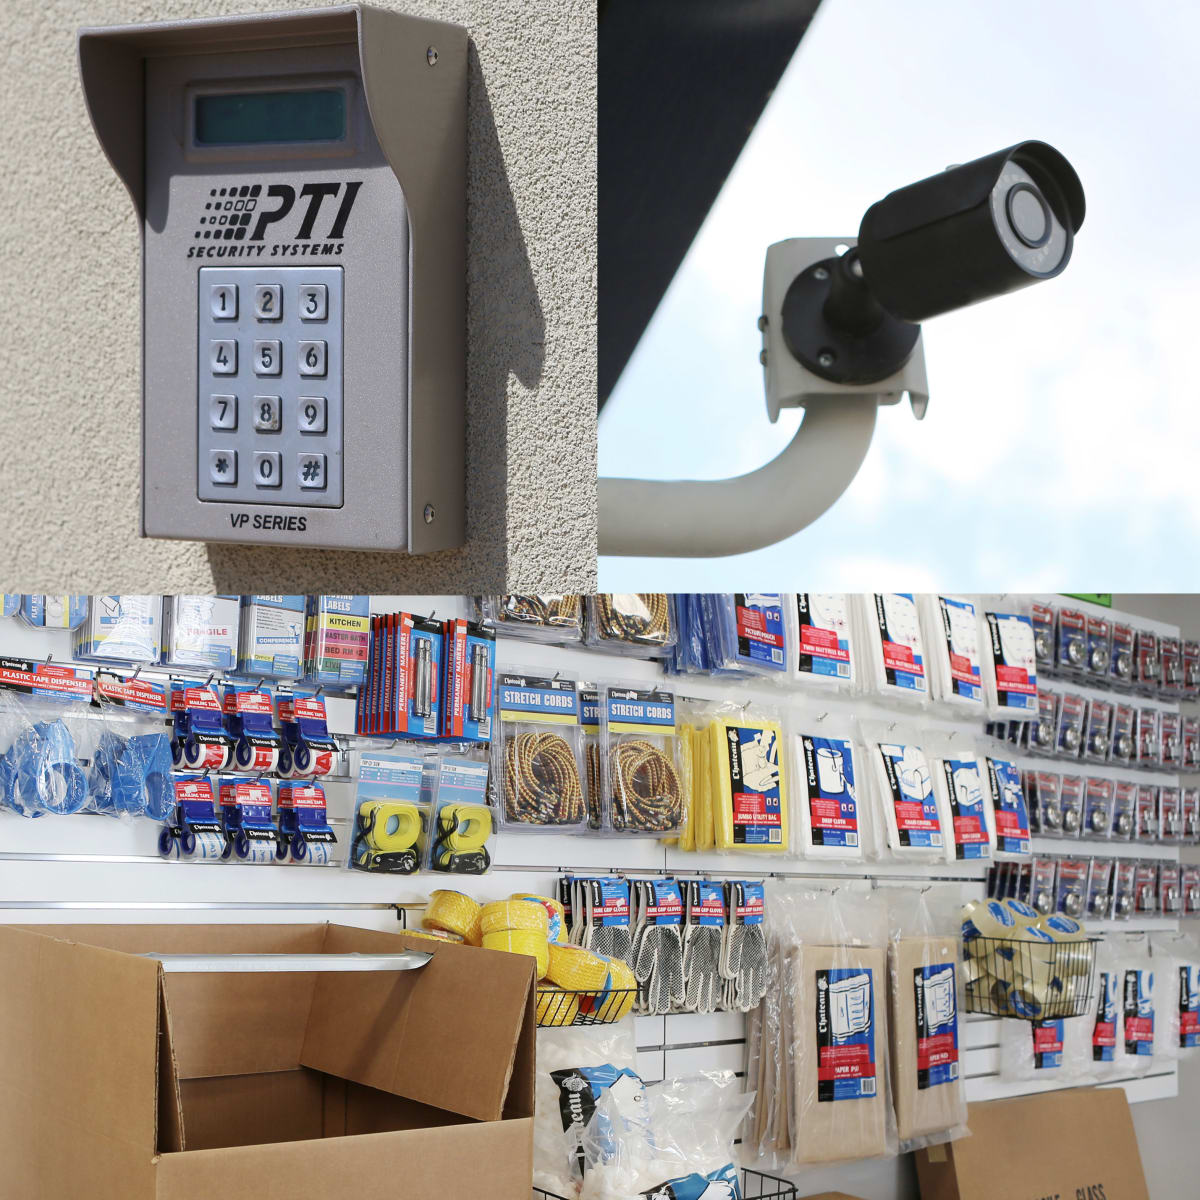 We provide 24 hour security monitoring and sell various moving and packing supplies at StoreSmart Self-Storage in Watkinsville, Georgia